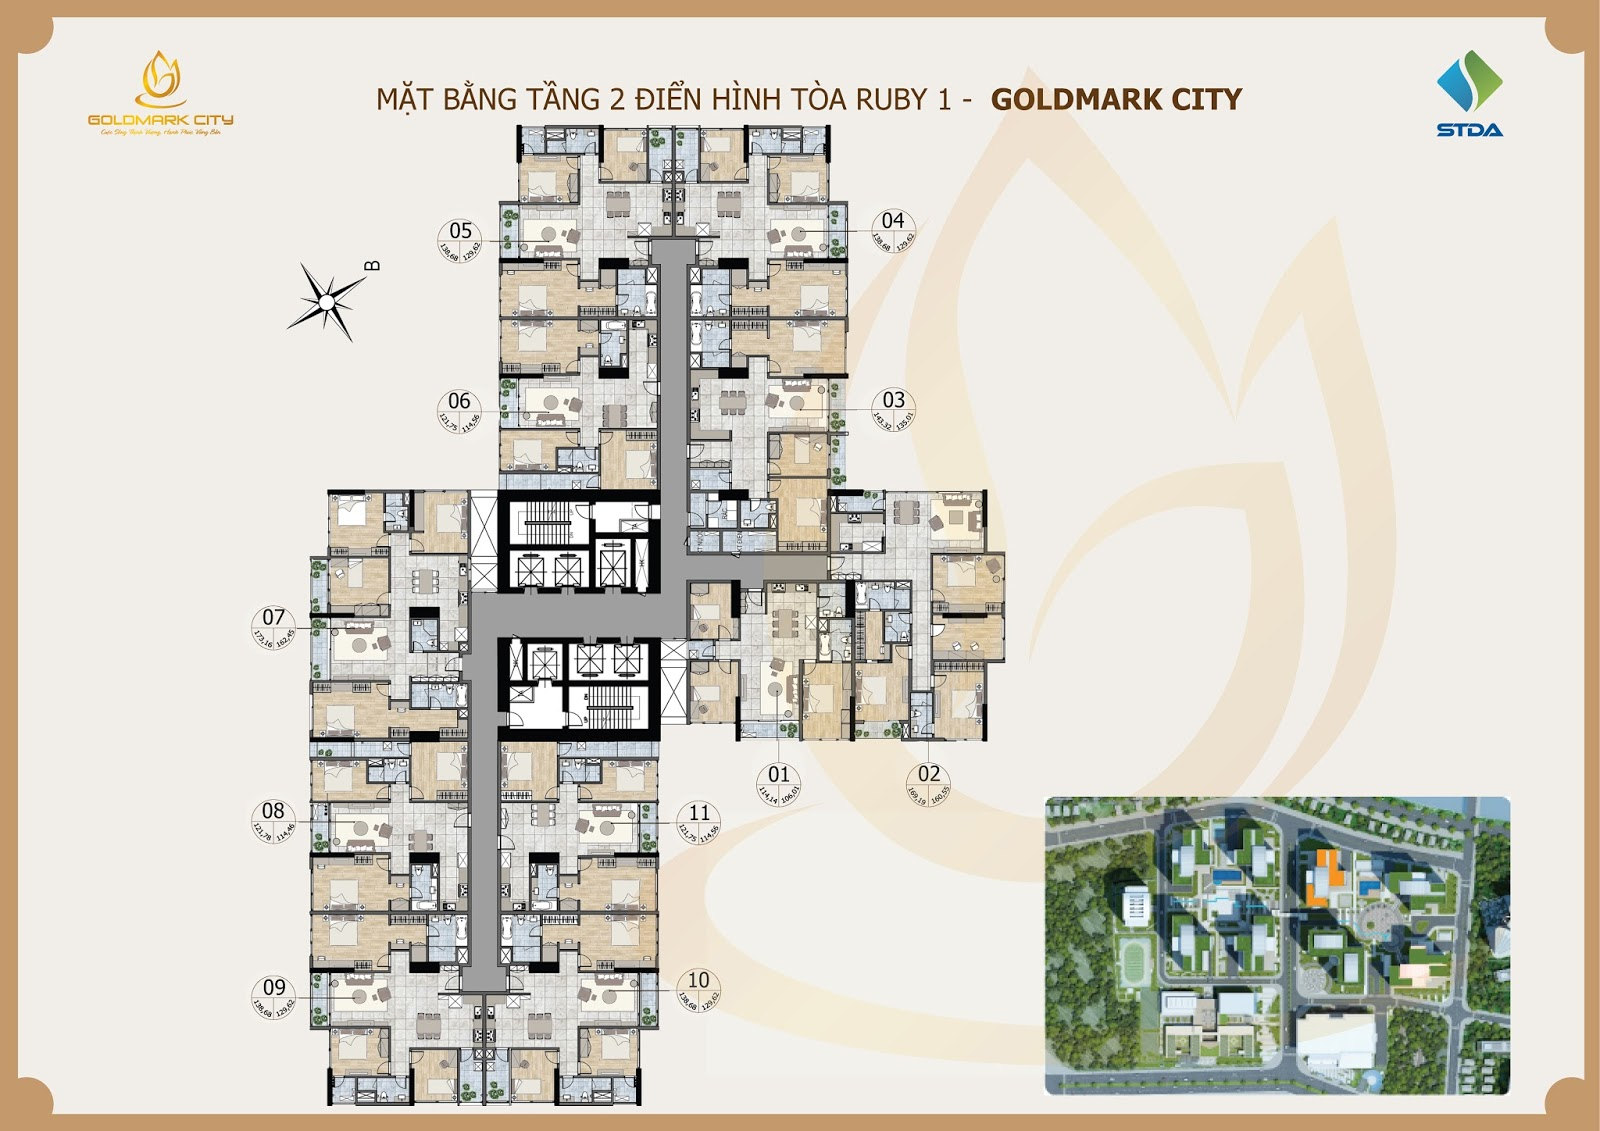 goldmark city ruby 1